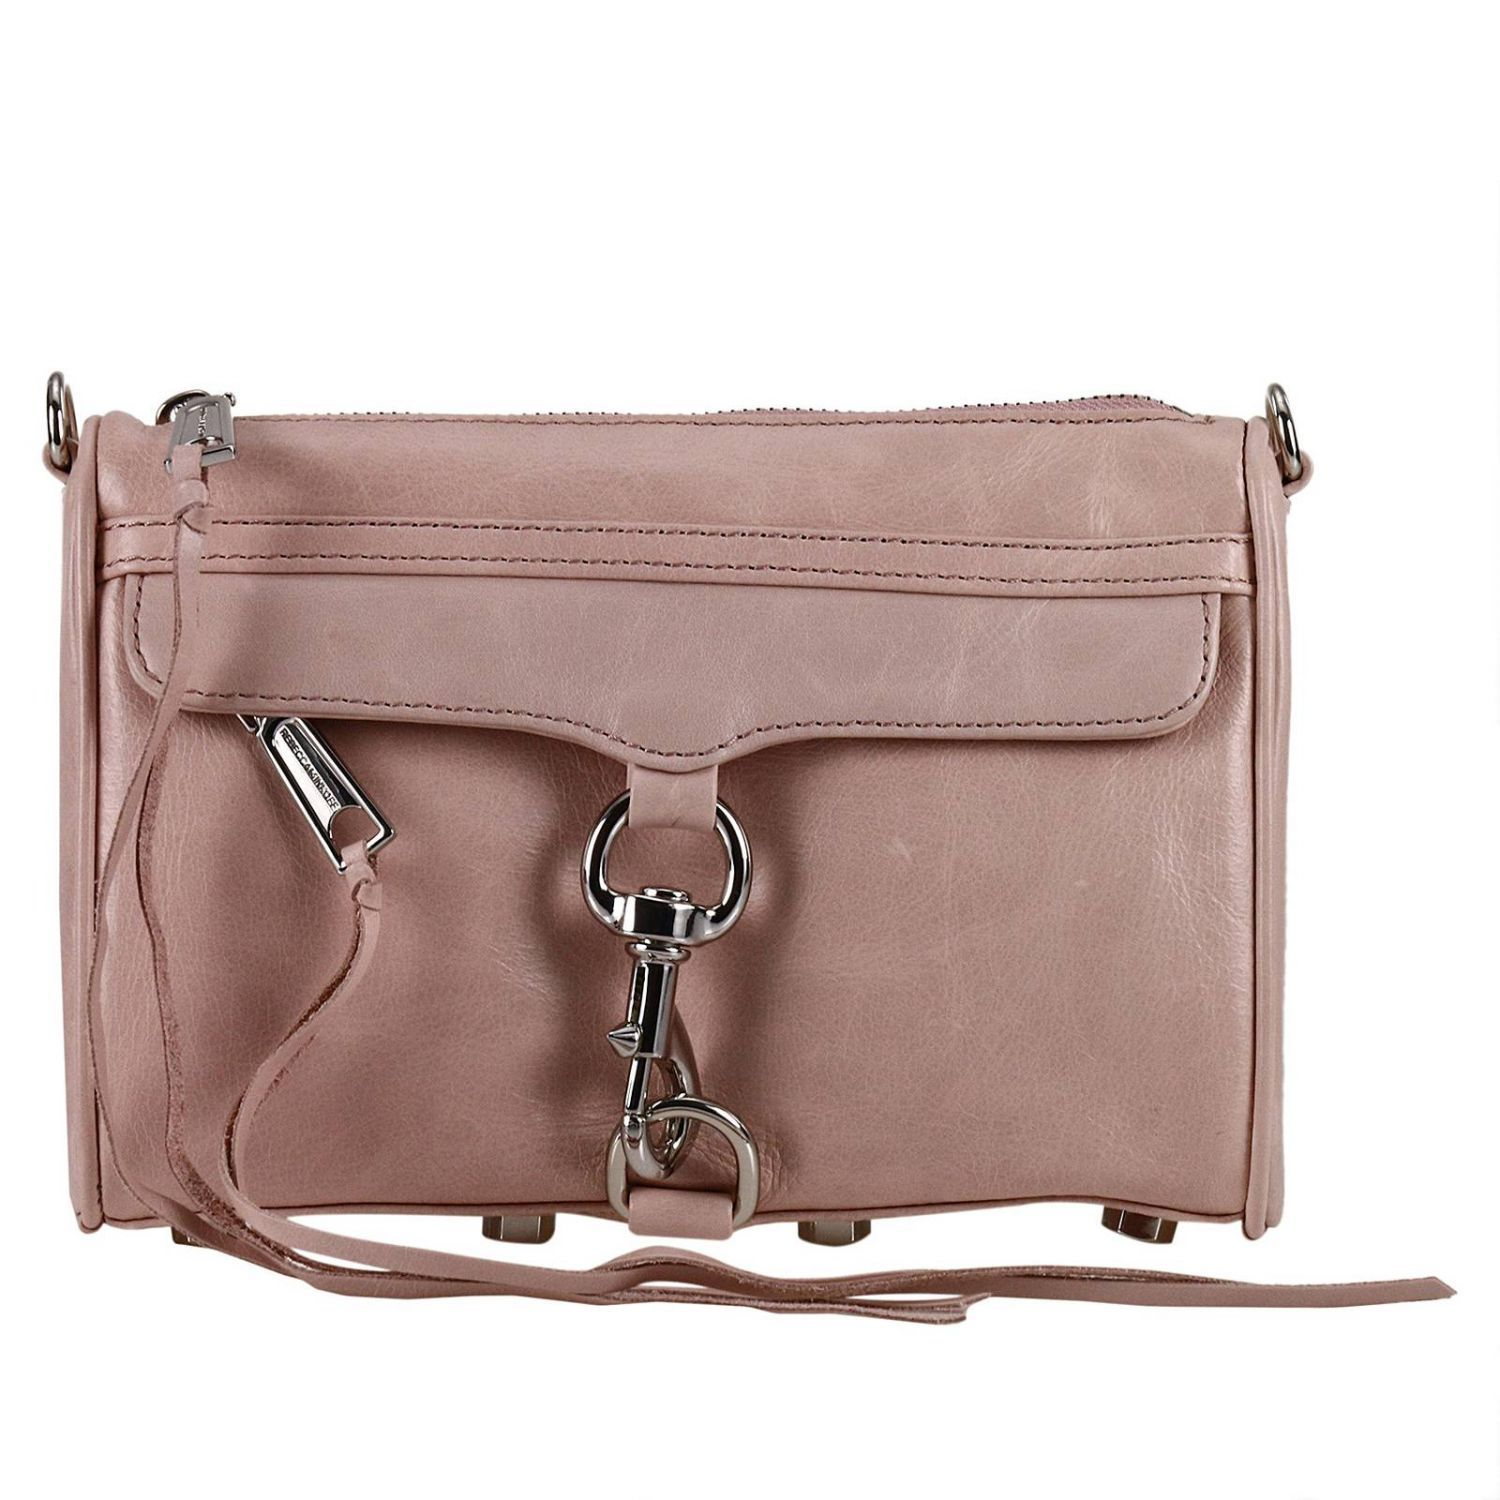 Crossbody Bags Shoulder Bag Women Rebecca Minkoff